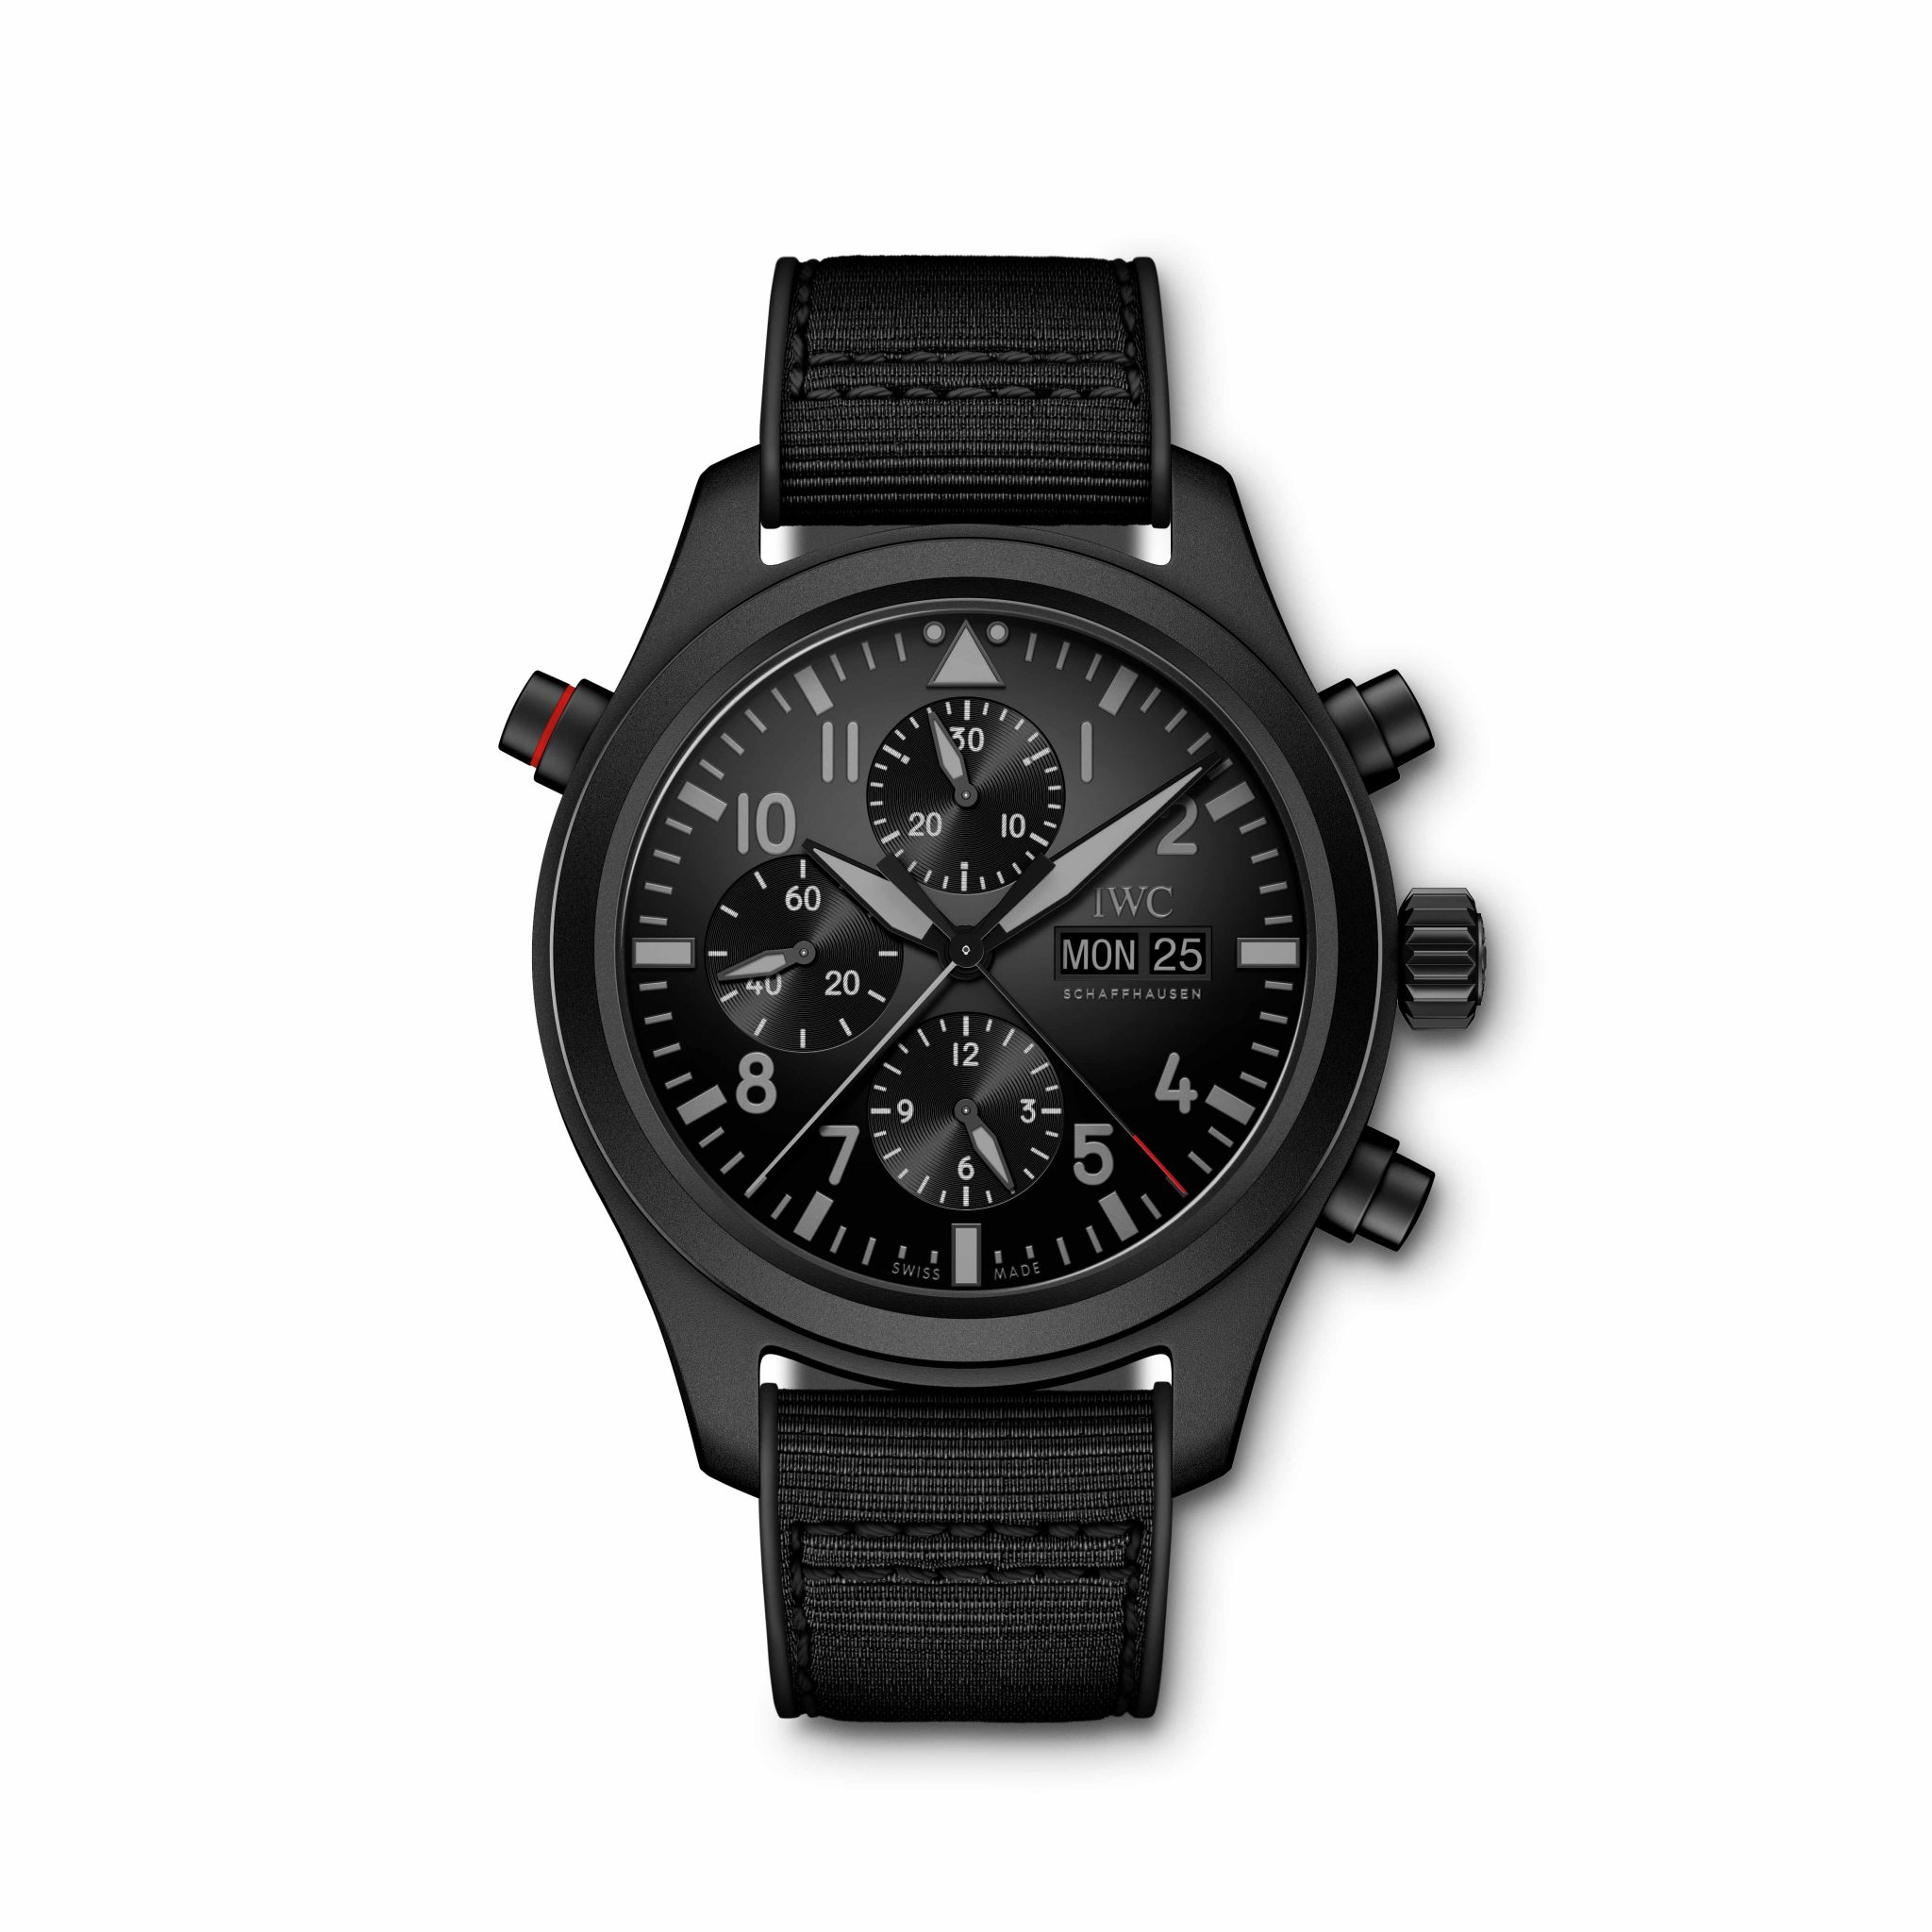 IW371815 Pilot's Watch Double Chronograph TOP GUN Ceratanium